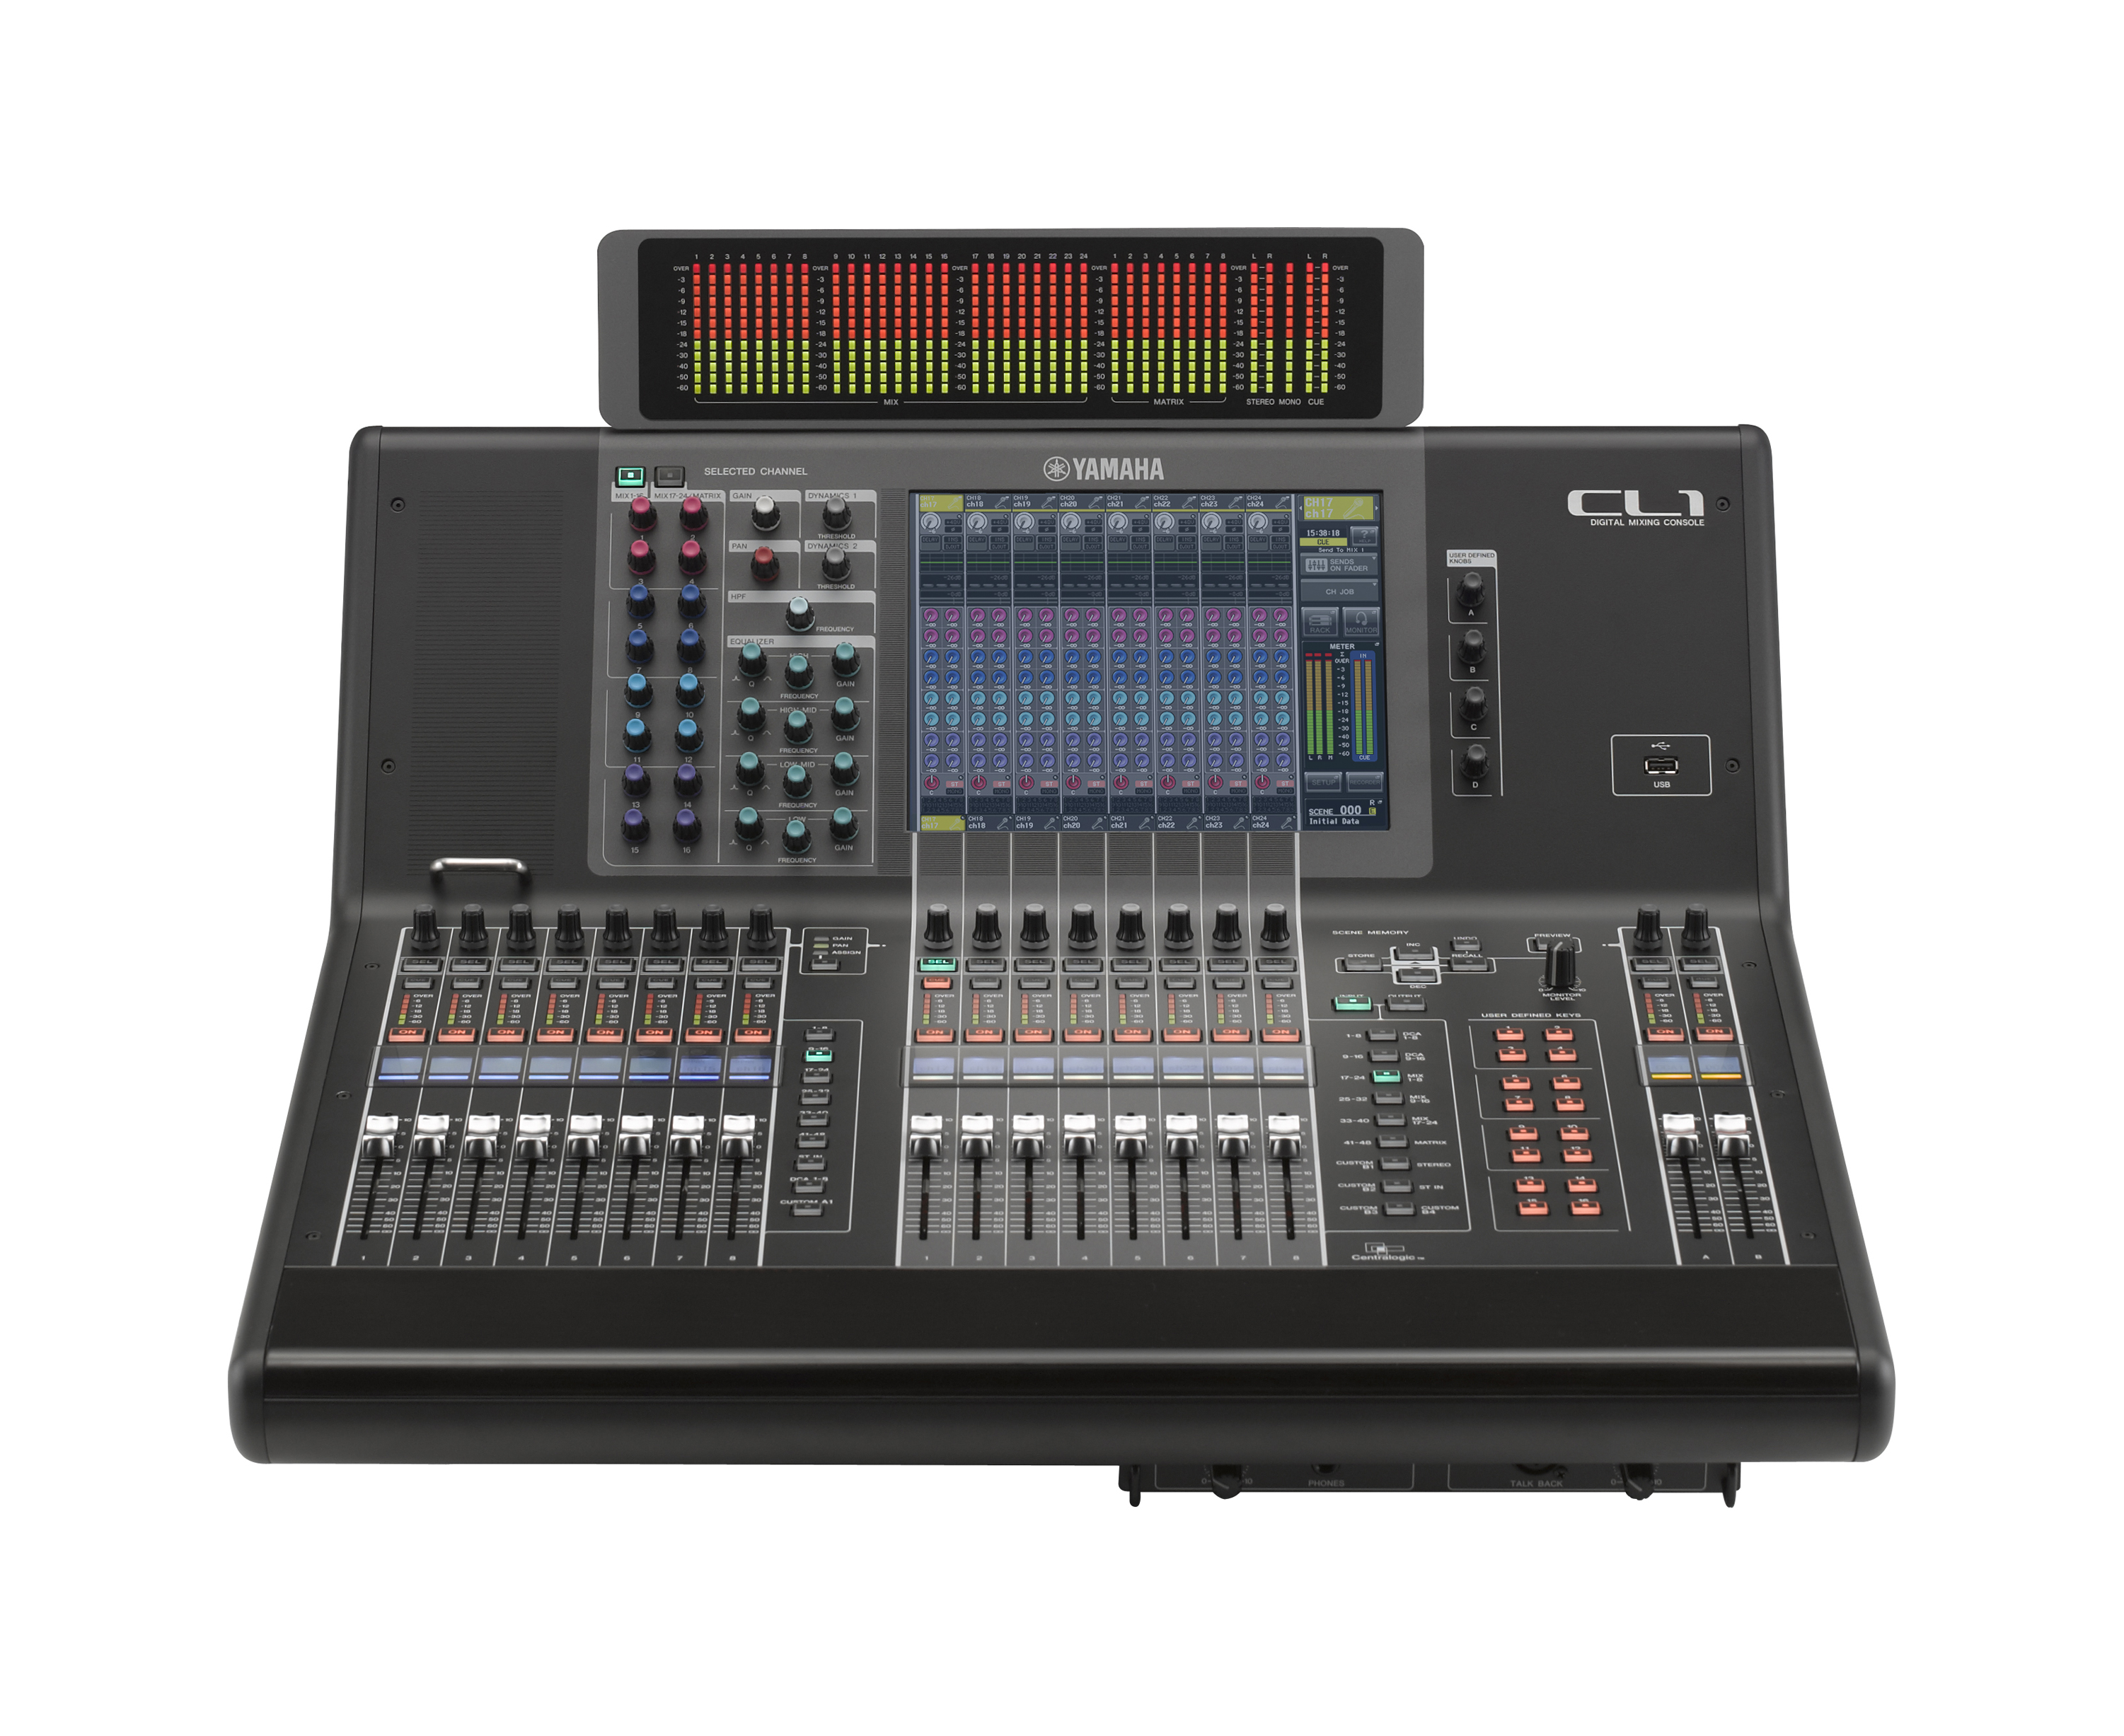 Yamaha cl s rie pro music s r o for Yamaha commercial audio